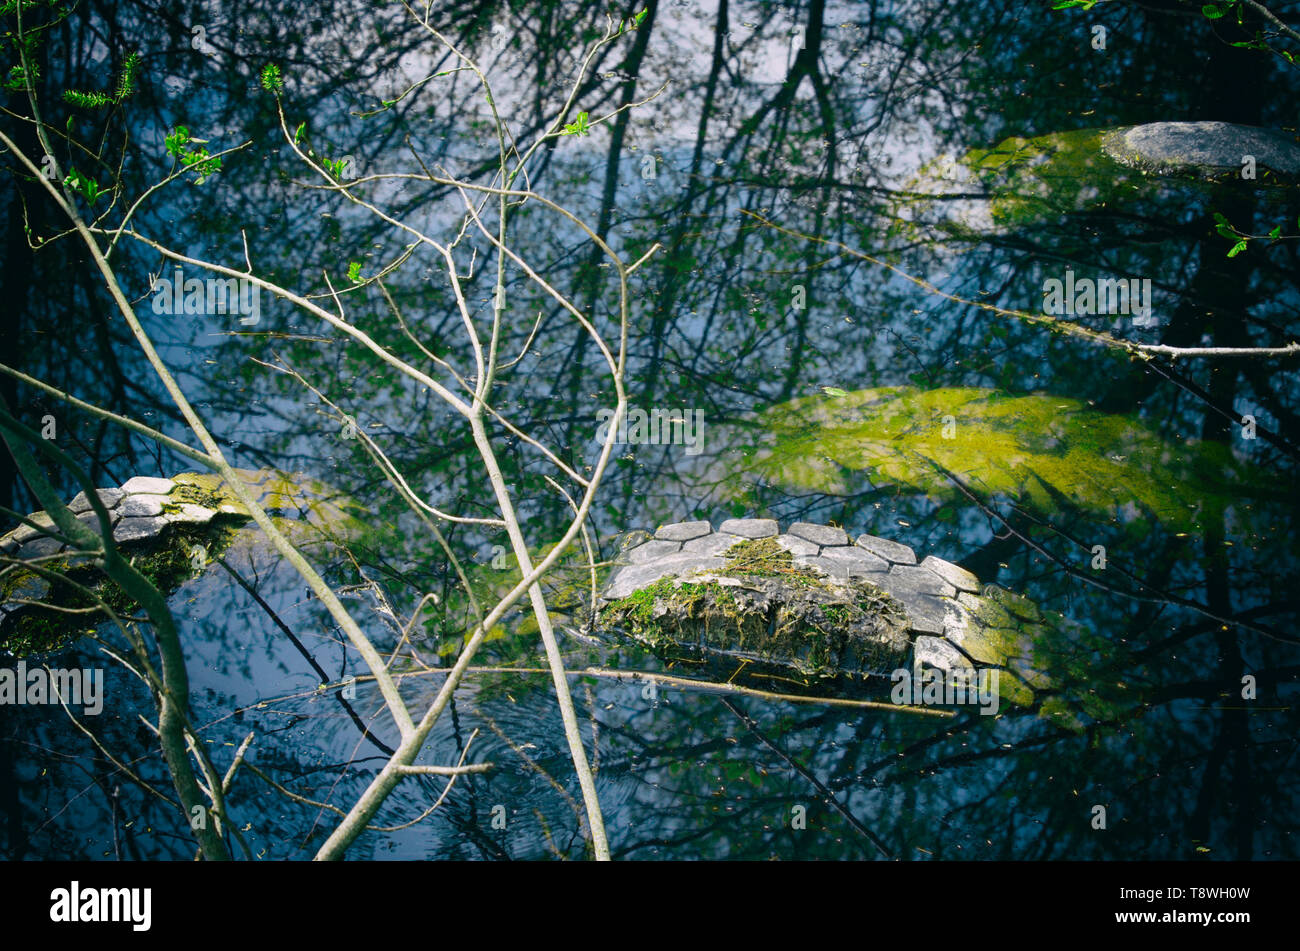 Four used tires, covered with moss and illegally flooded in a forest pond and shrubs reflected in the water - Stock Image